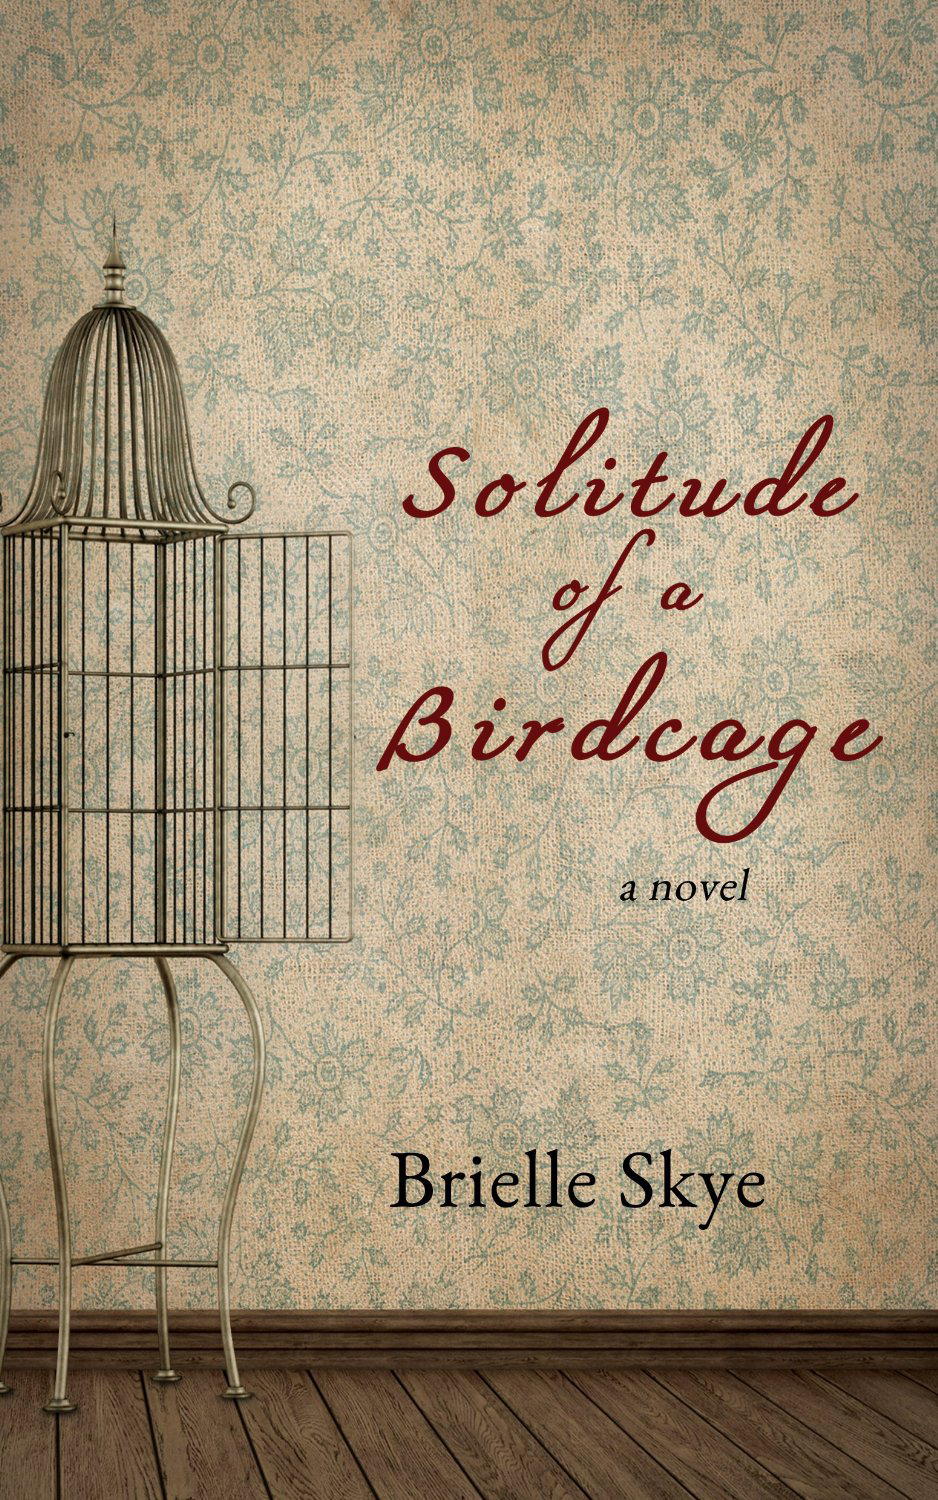 Solitude of a Birdcage